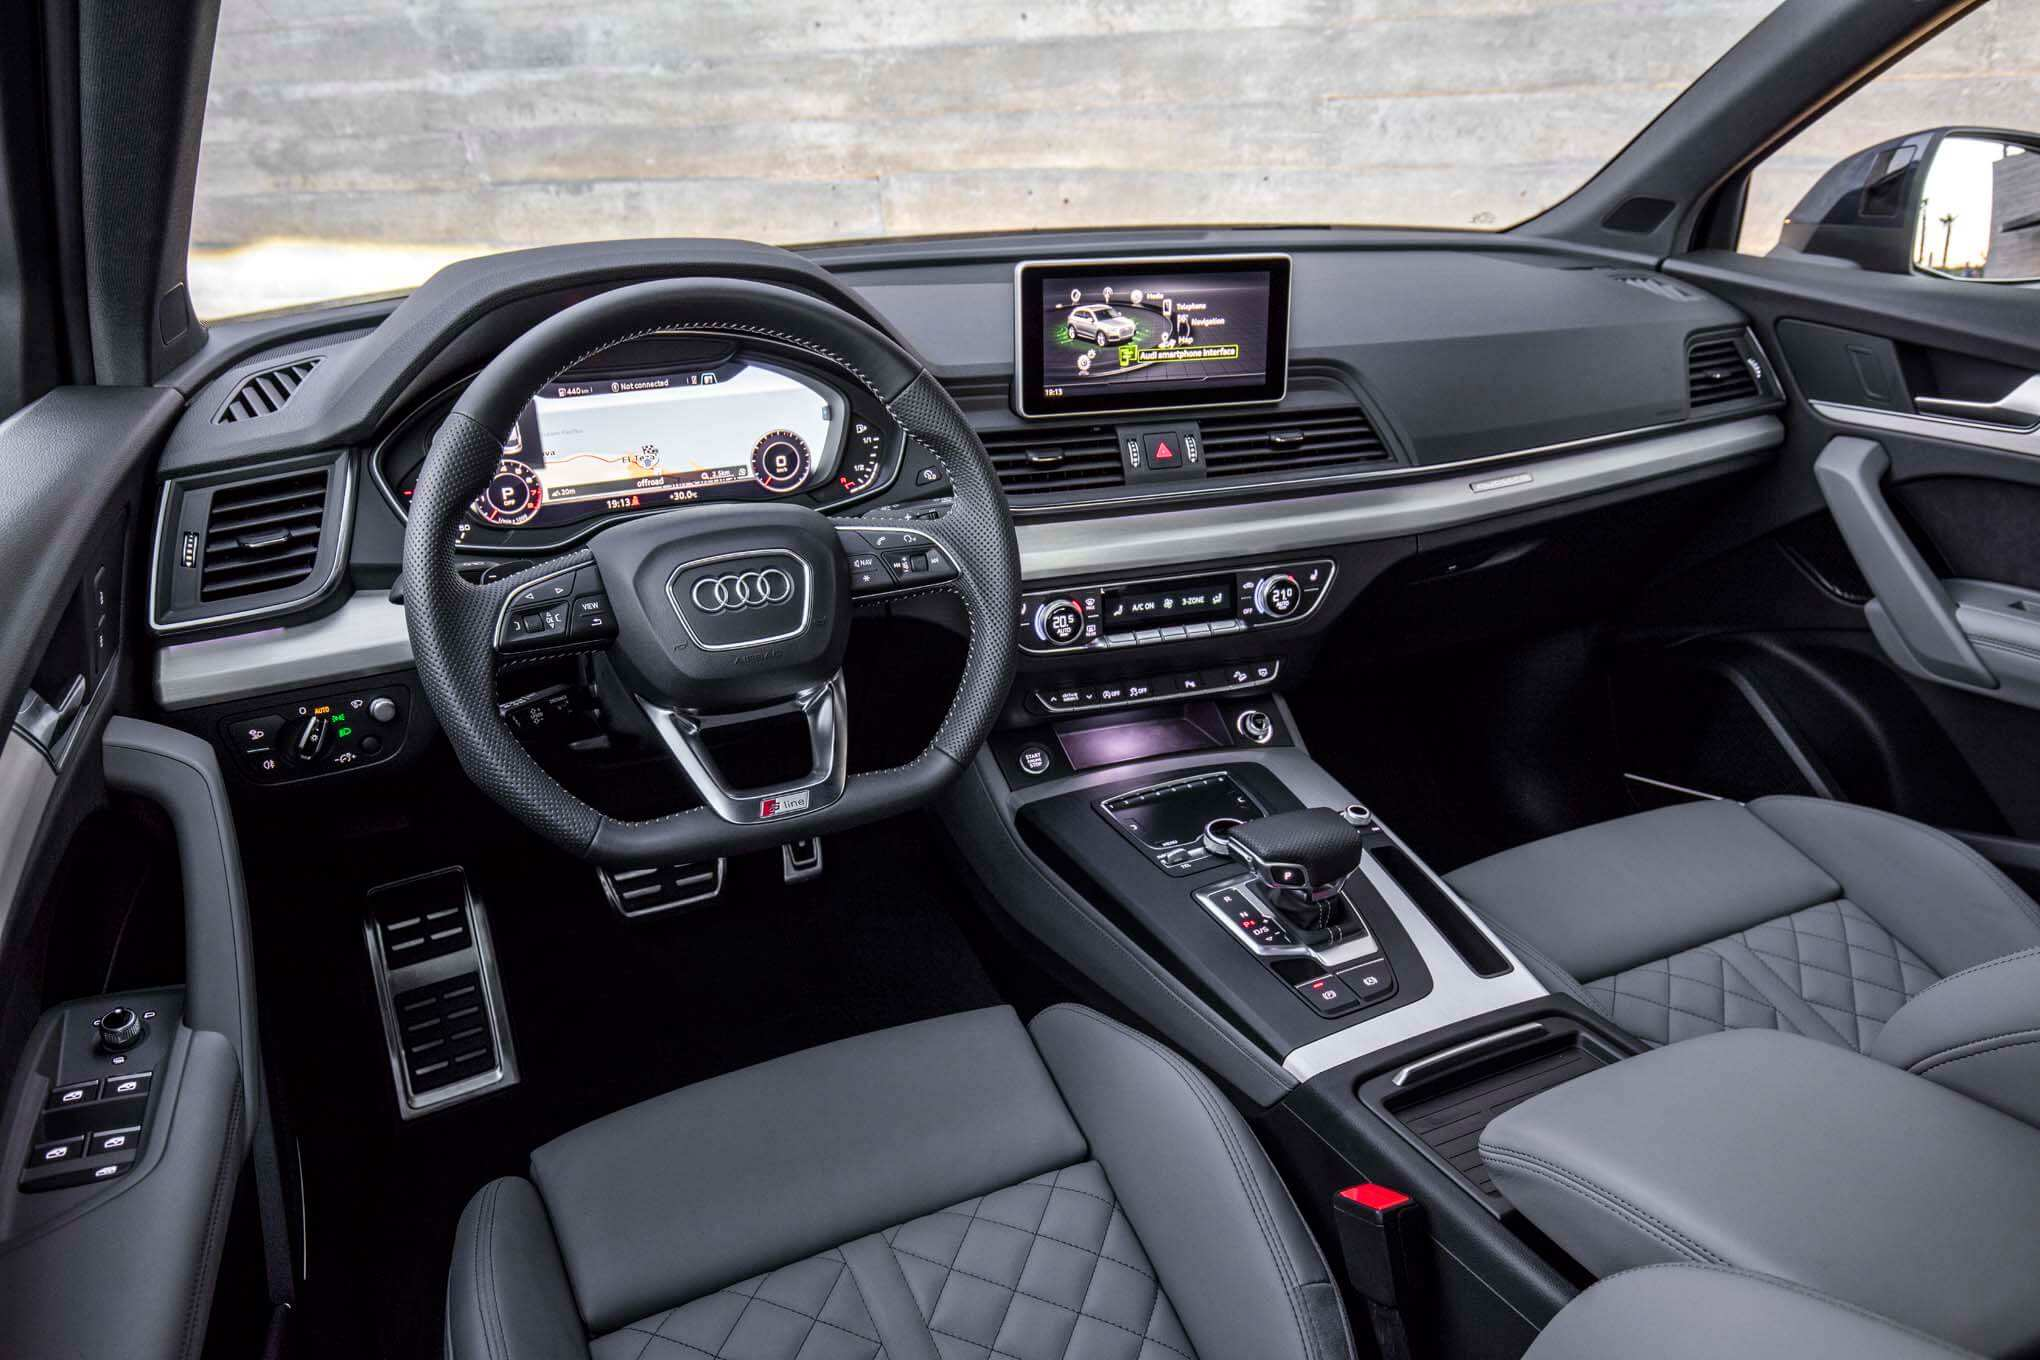 92 New Review Audi 2019 A6 New Interior Style with Review Audi 2019 A6 New Interior